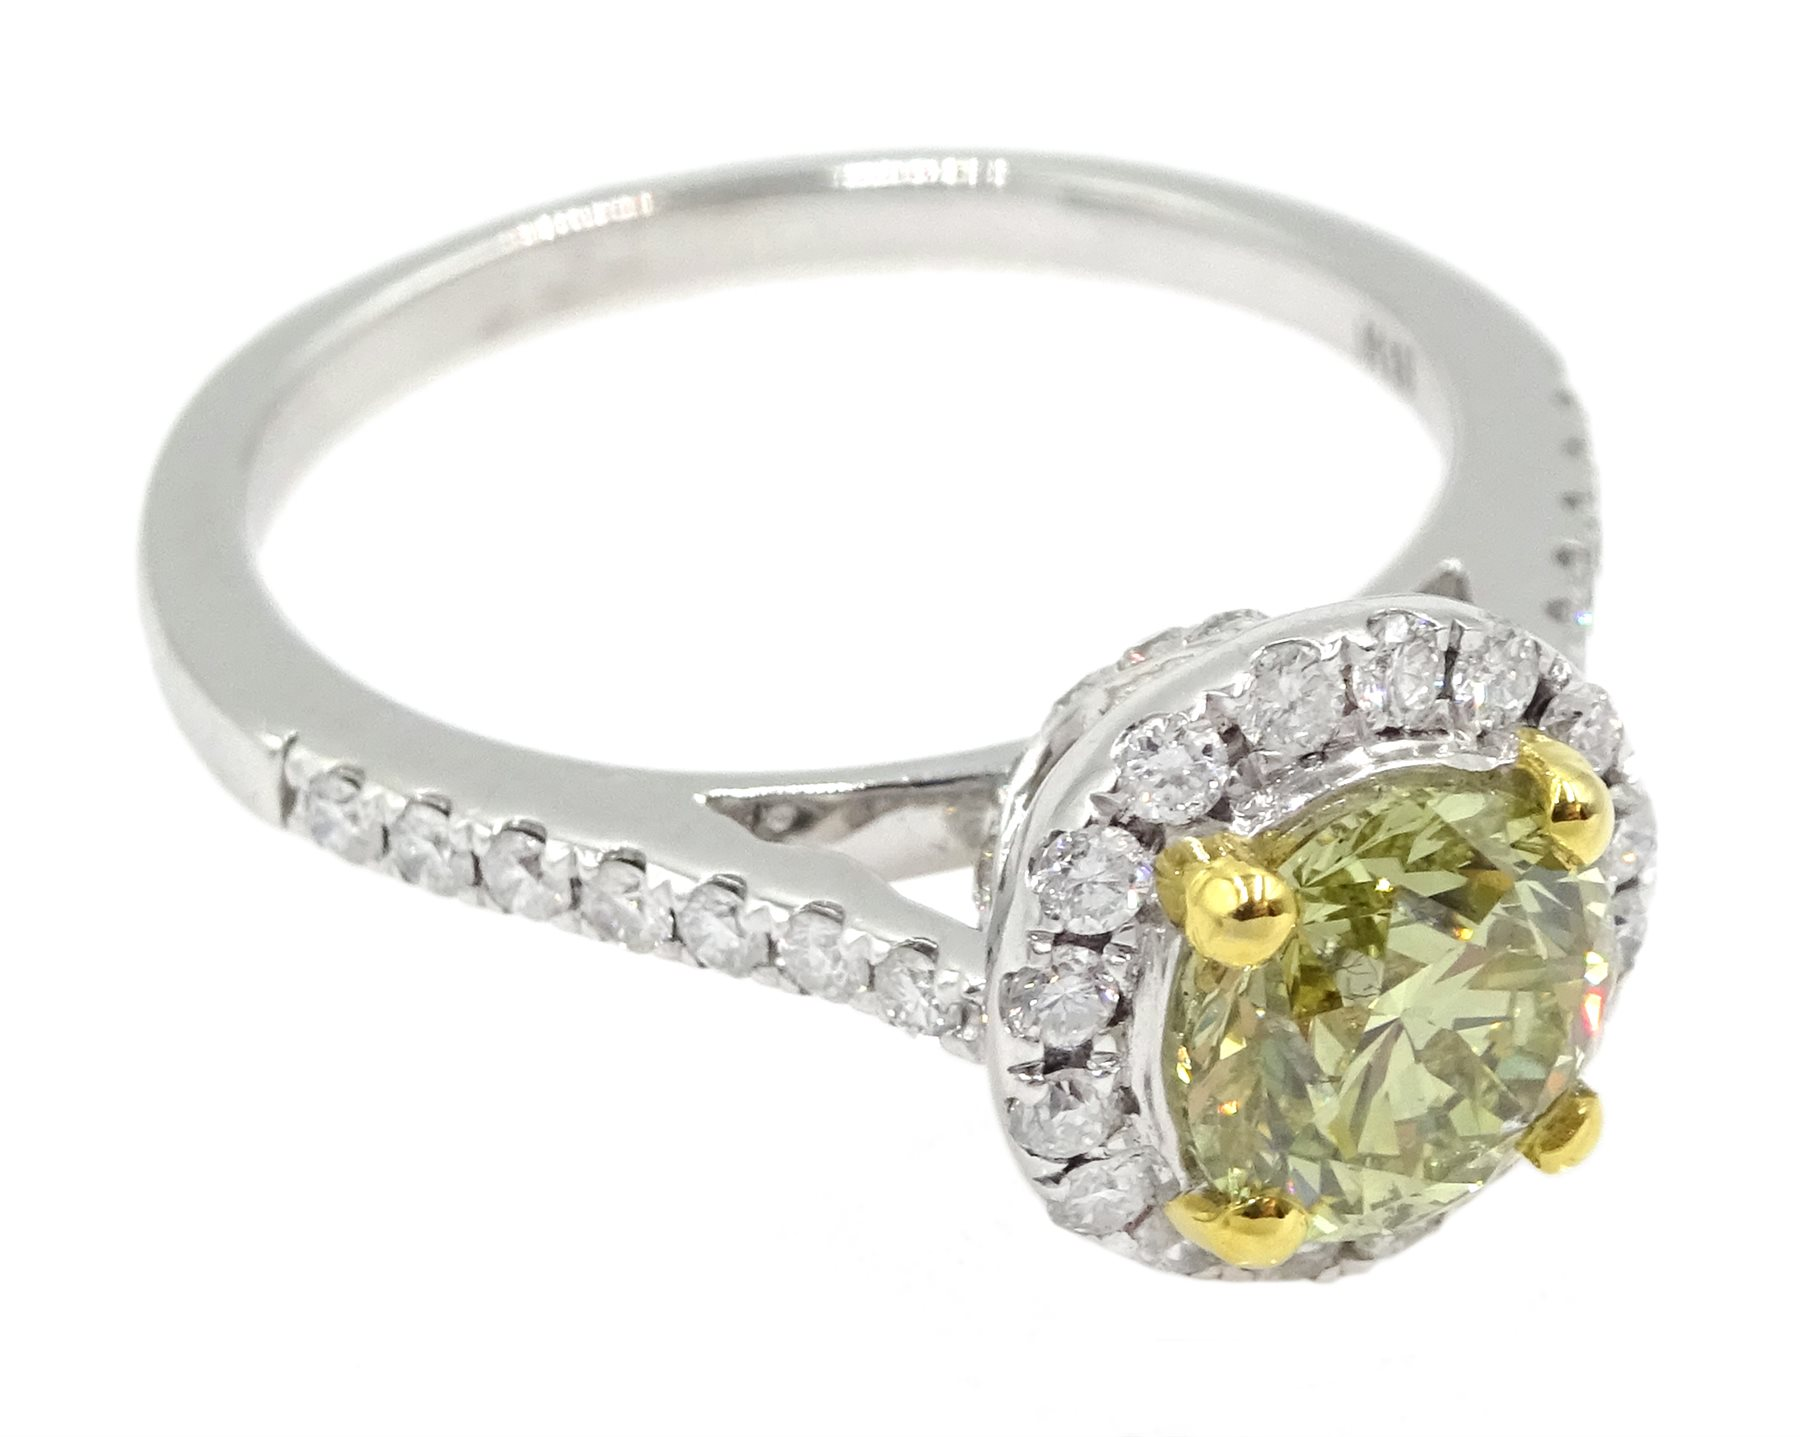 18ct white gold diamond halo ring, the central round brilliant cut fancy yellow diamond of 1.02 cara - Image 3 of 6